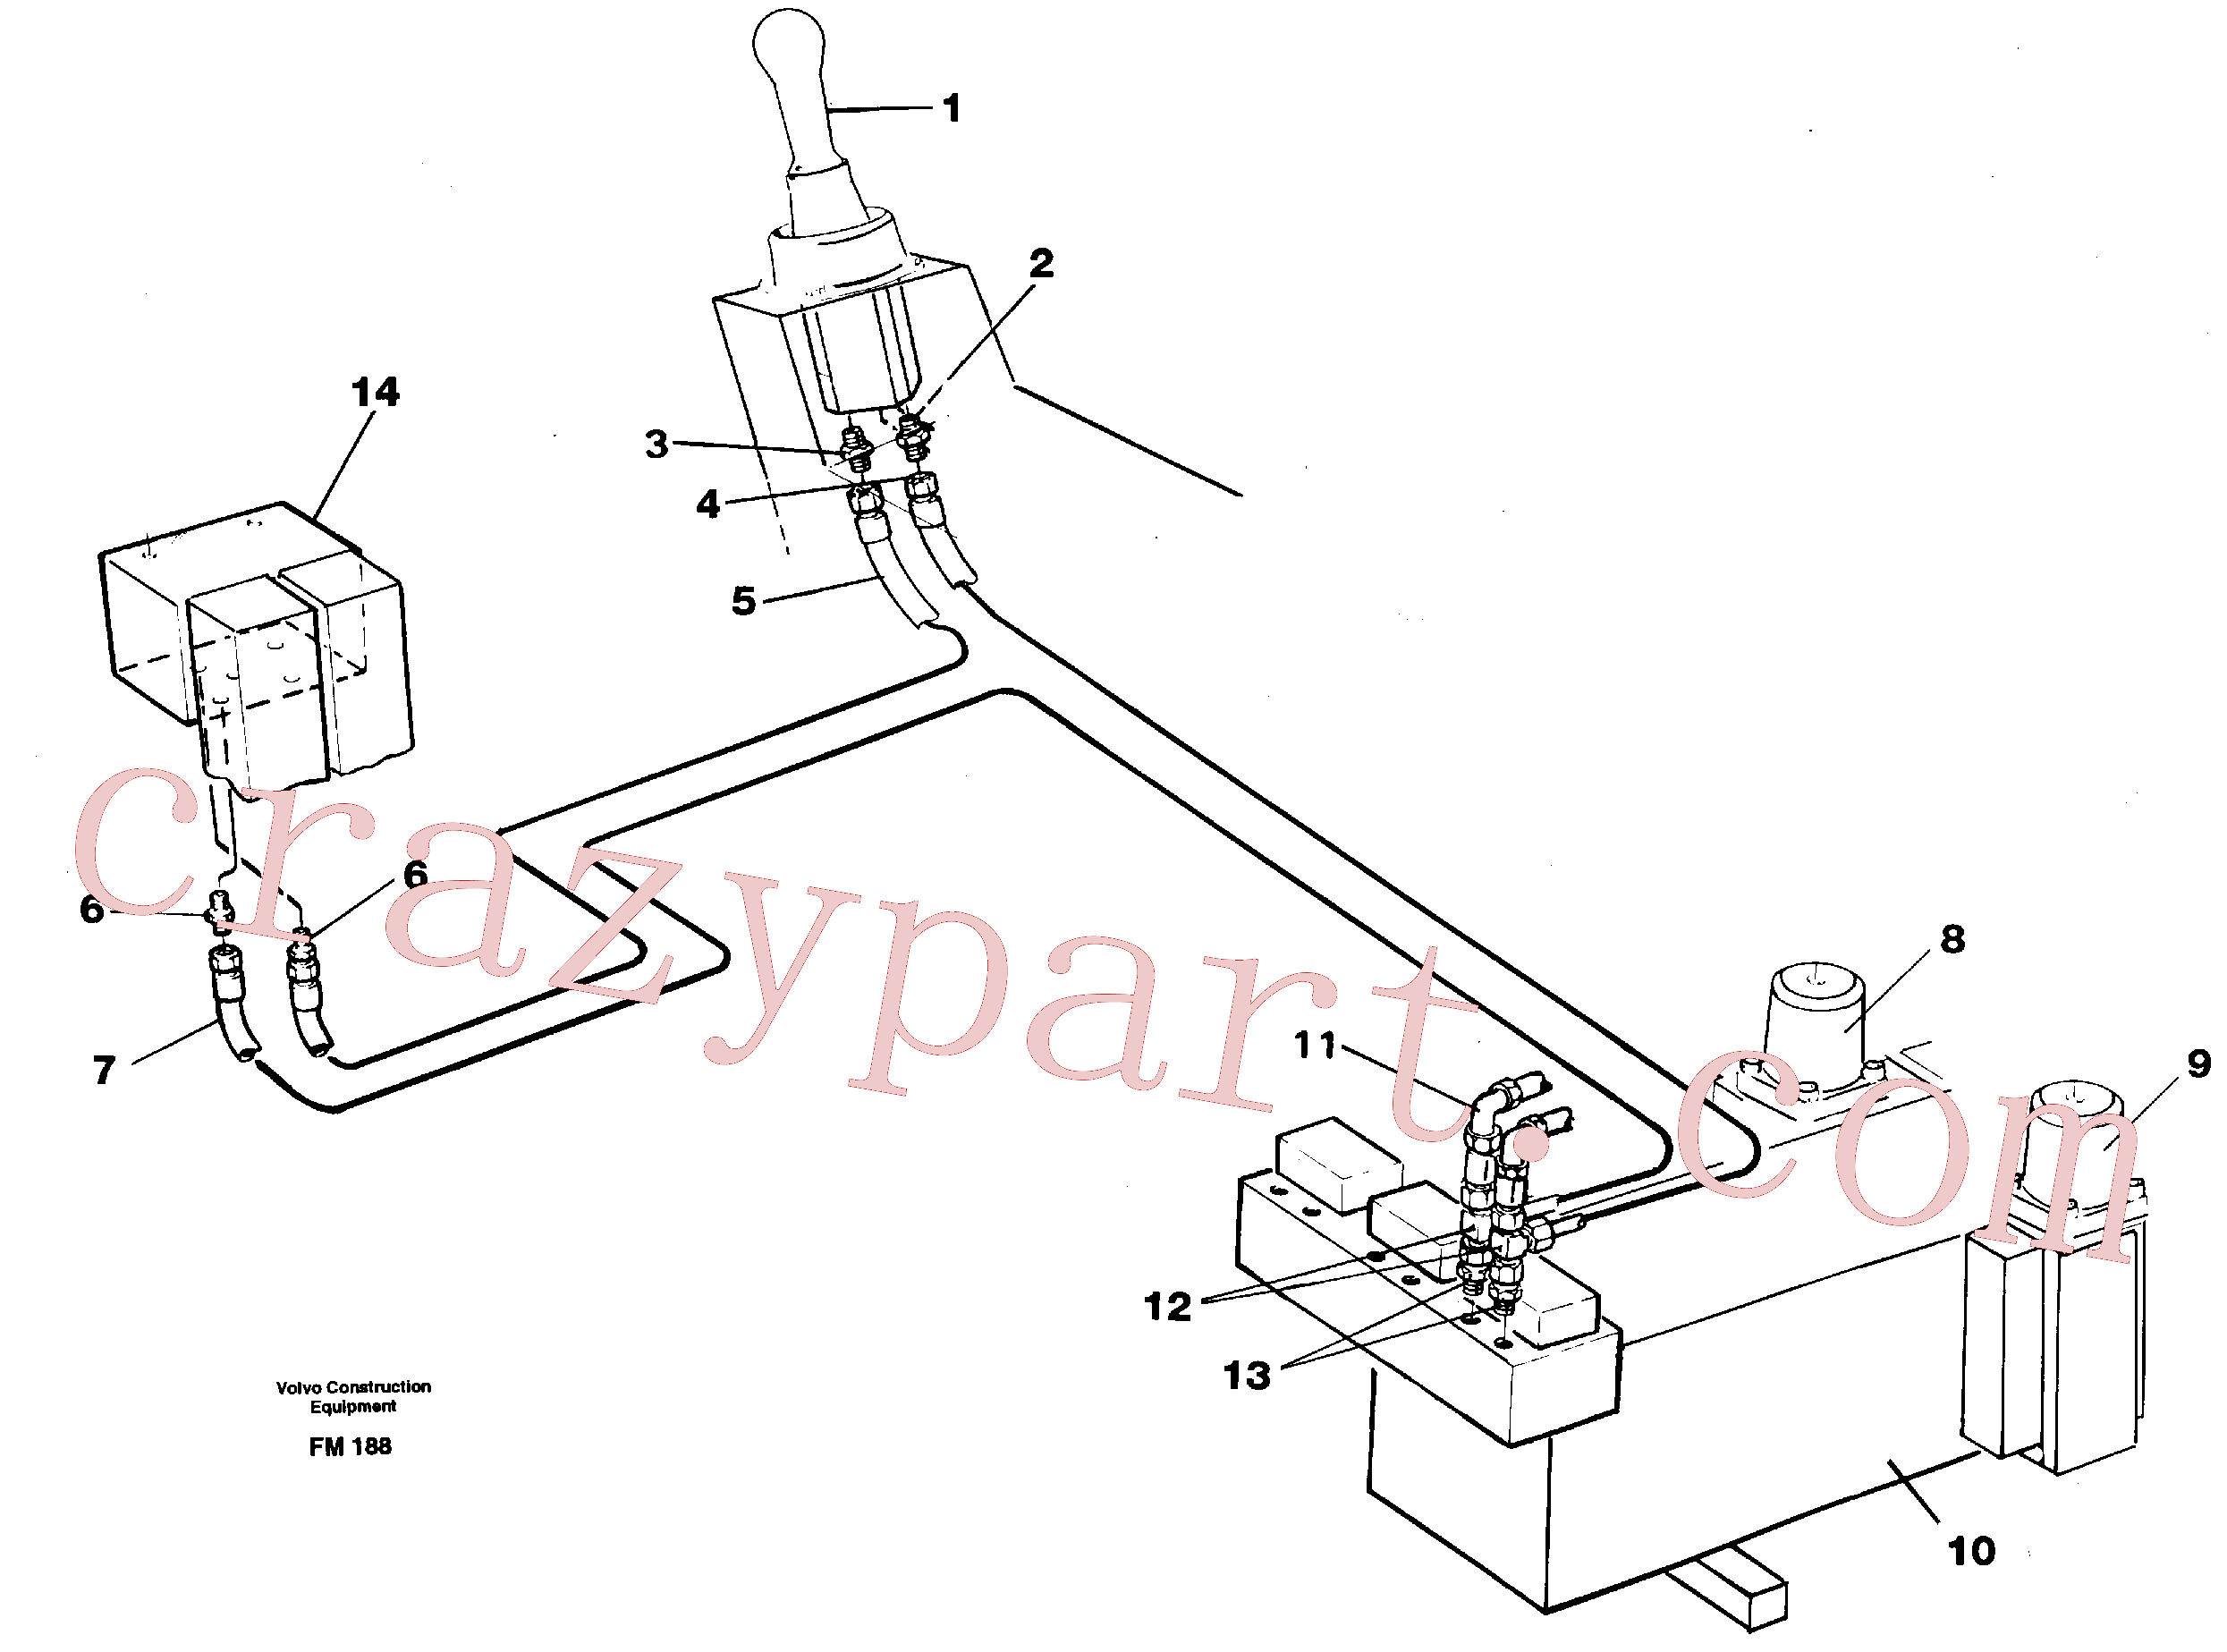 VOE14264523 for Volvo Servo hydraulics, dipper arm(FM188 assembly)